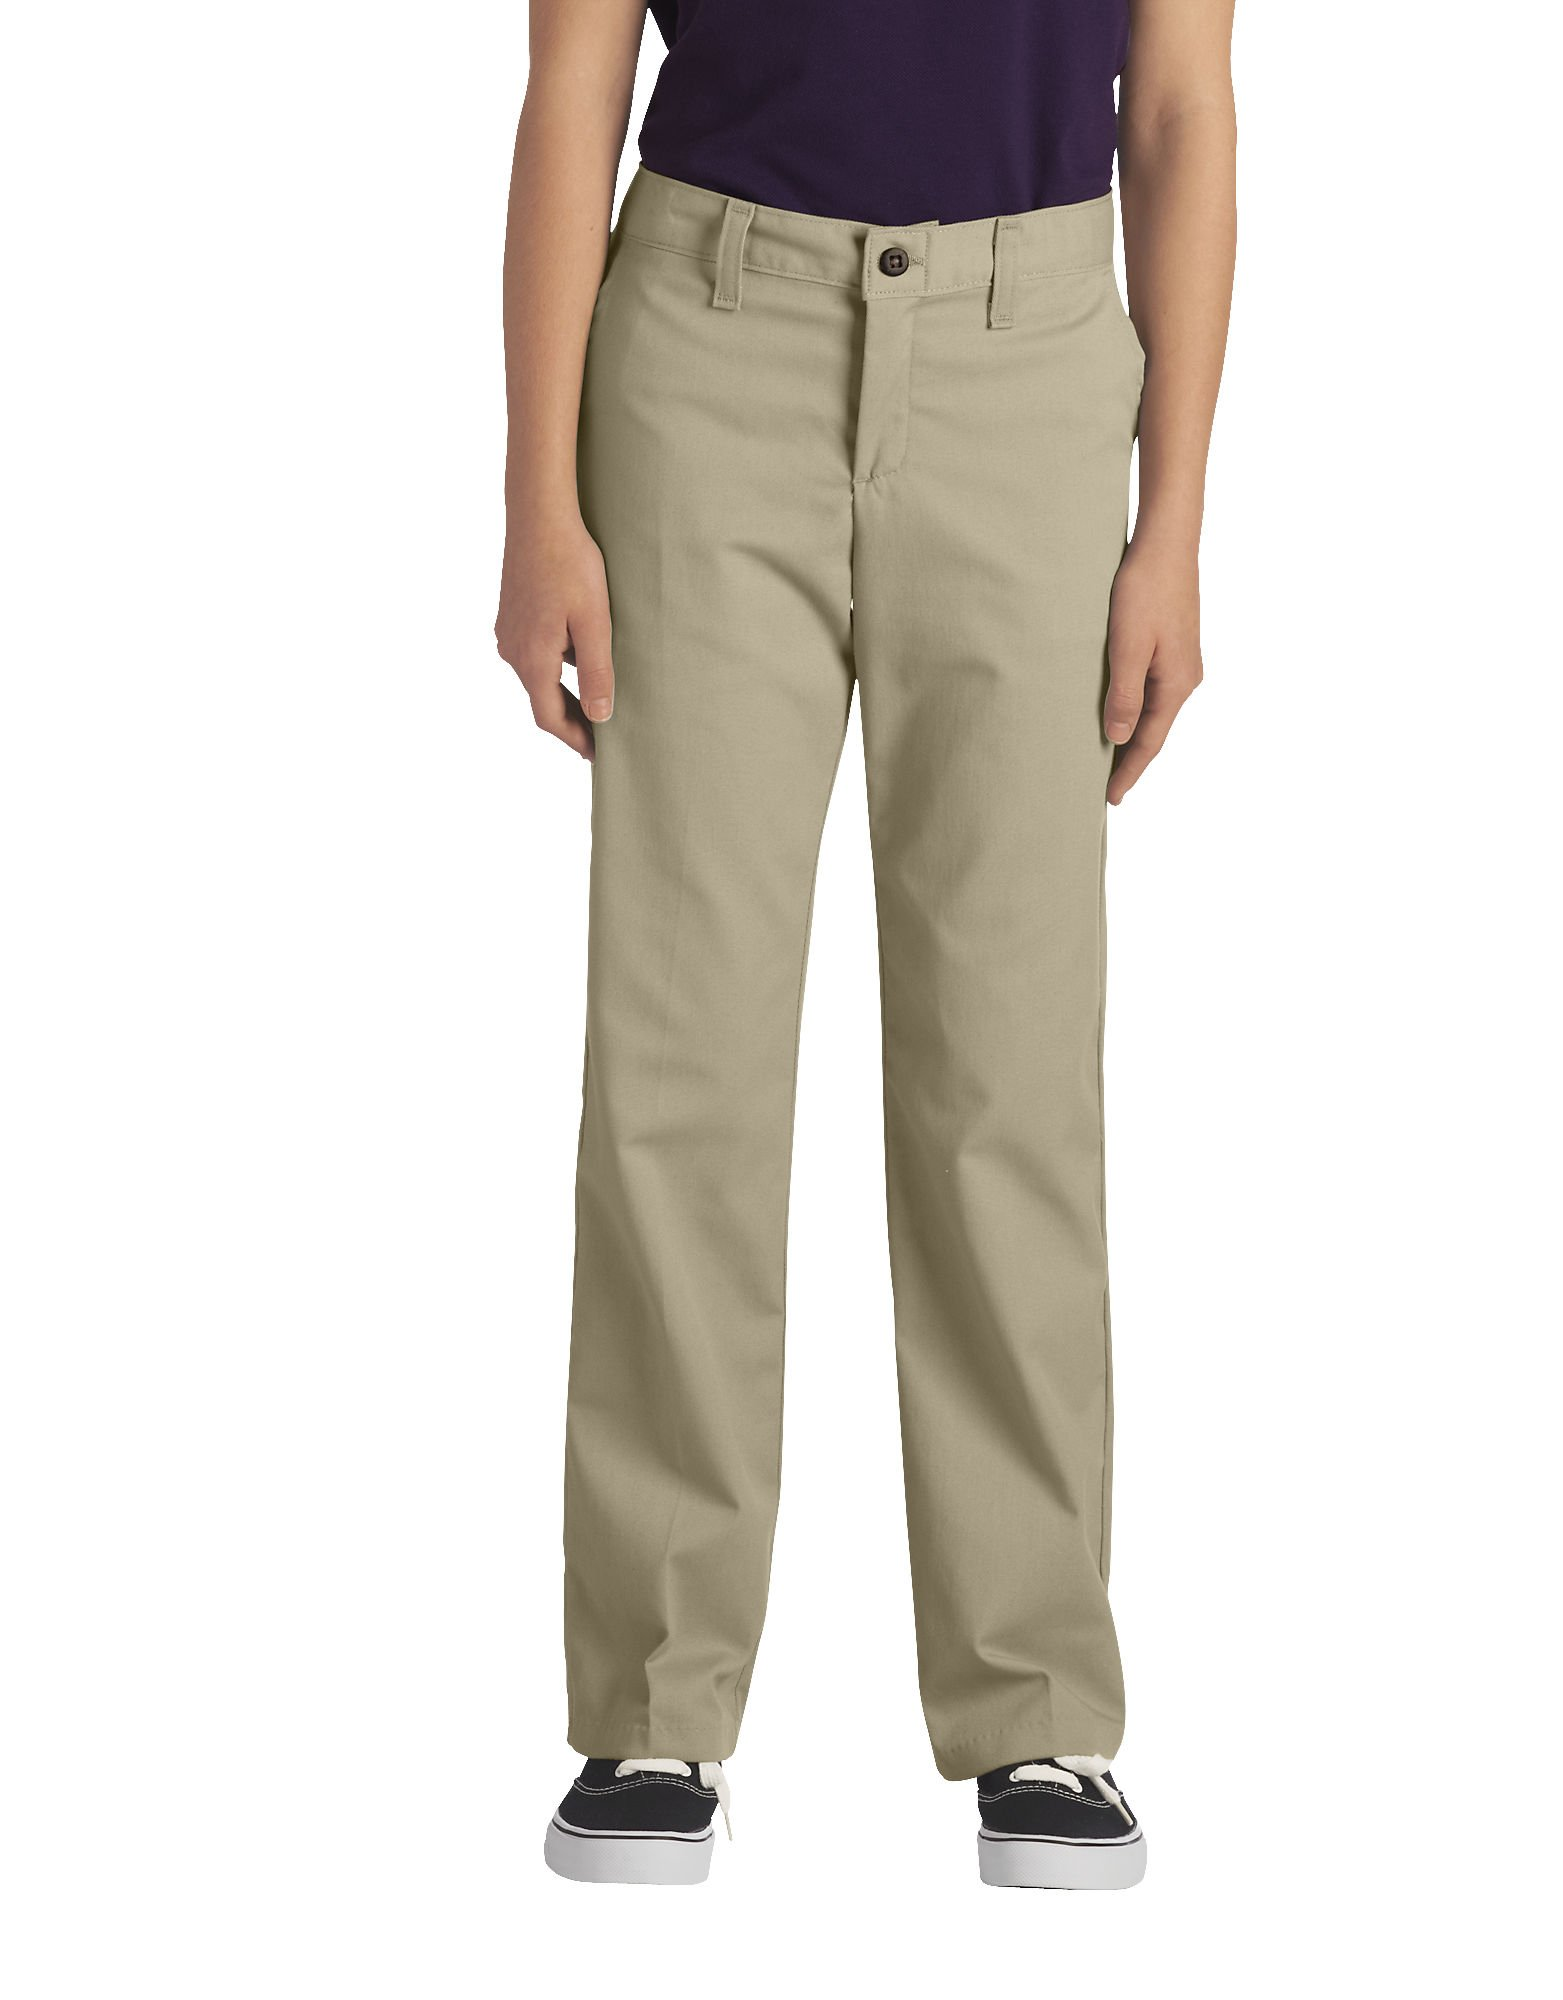 Girls' FlexWaist® Classic Fit Straight Leg Stretch Twill Pants, 4-20 - Desert Khaki (DS)